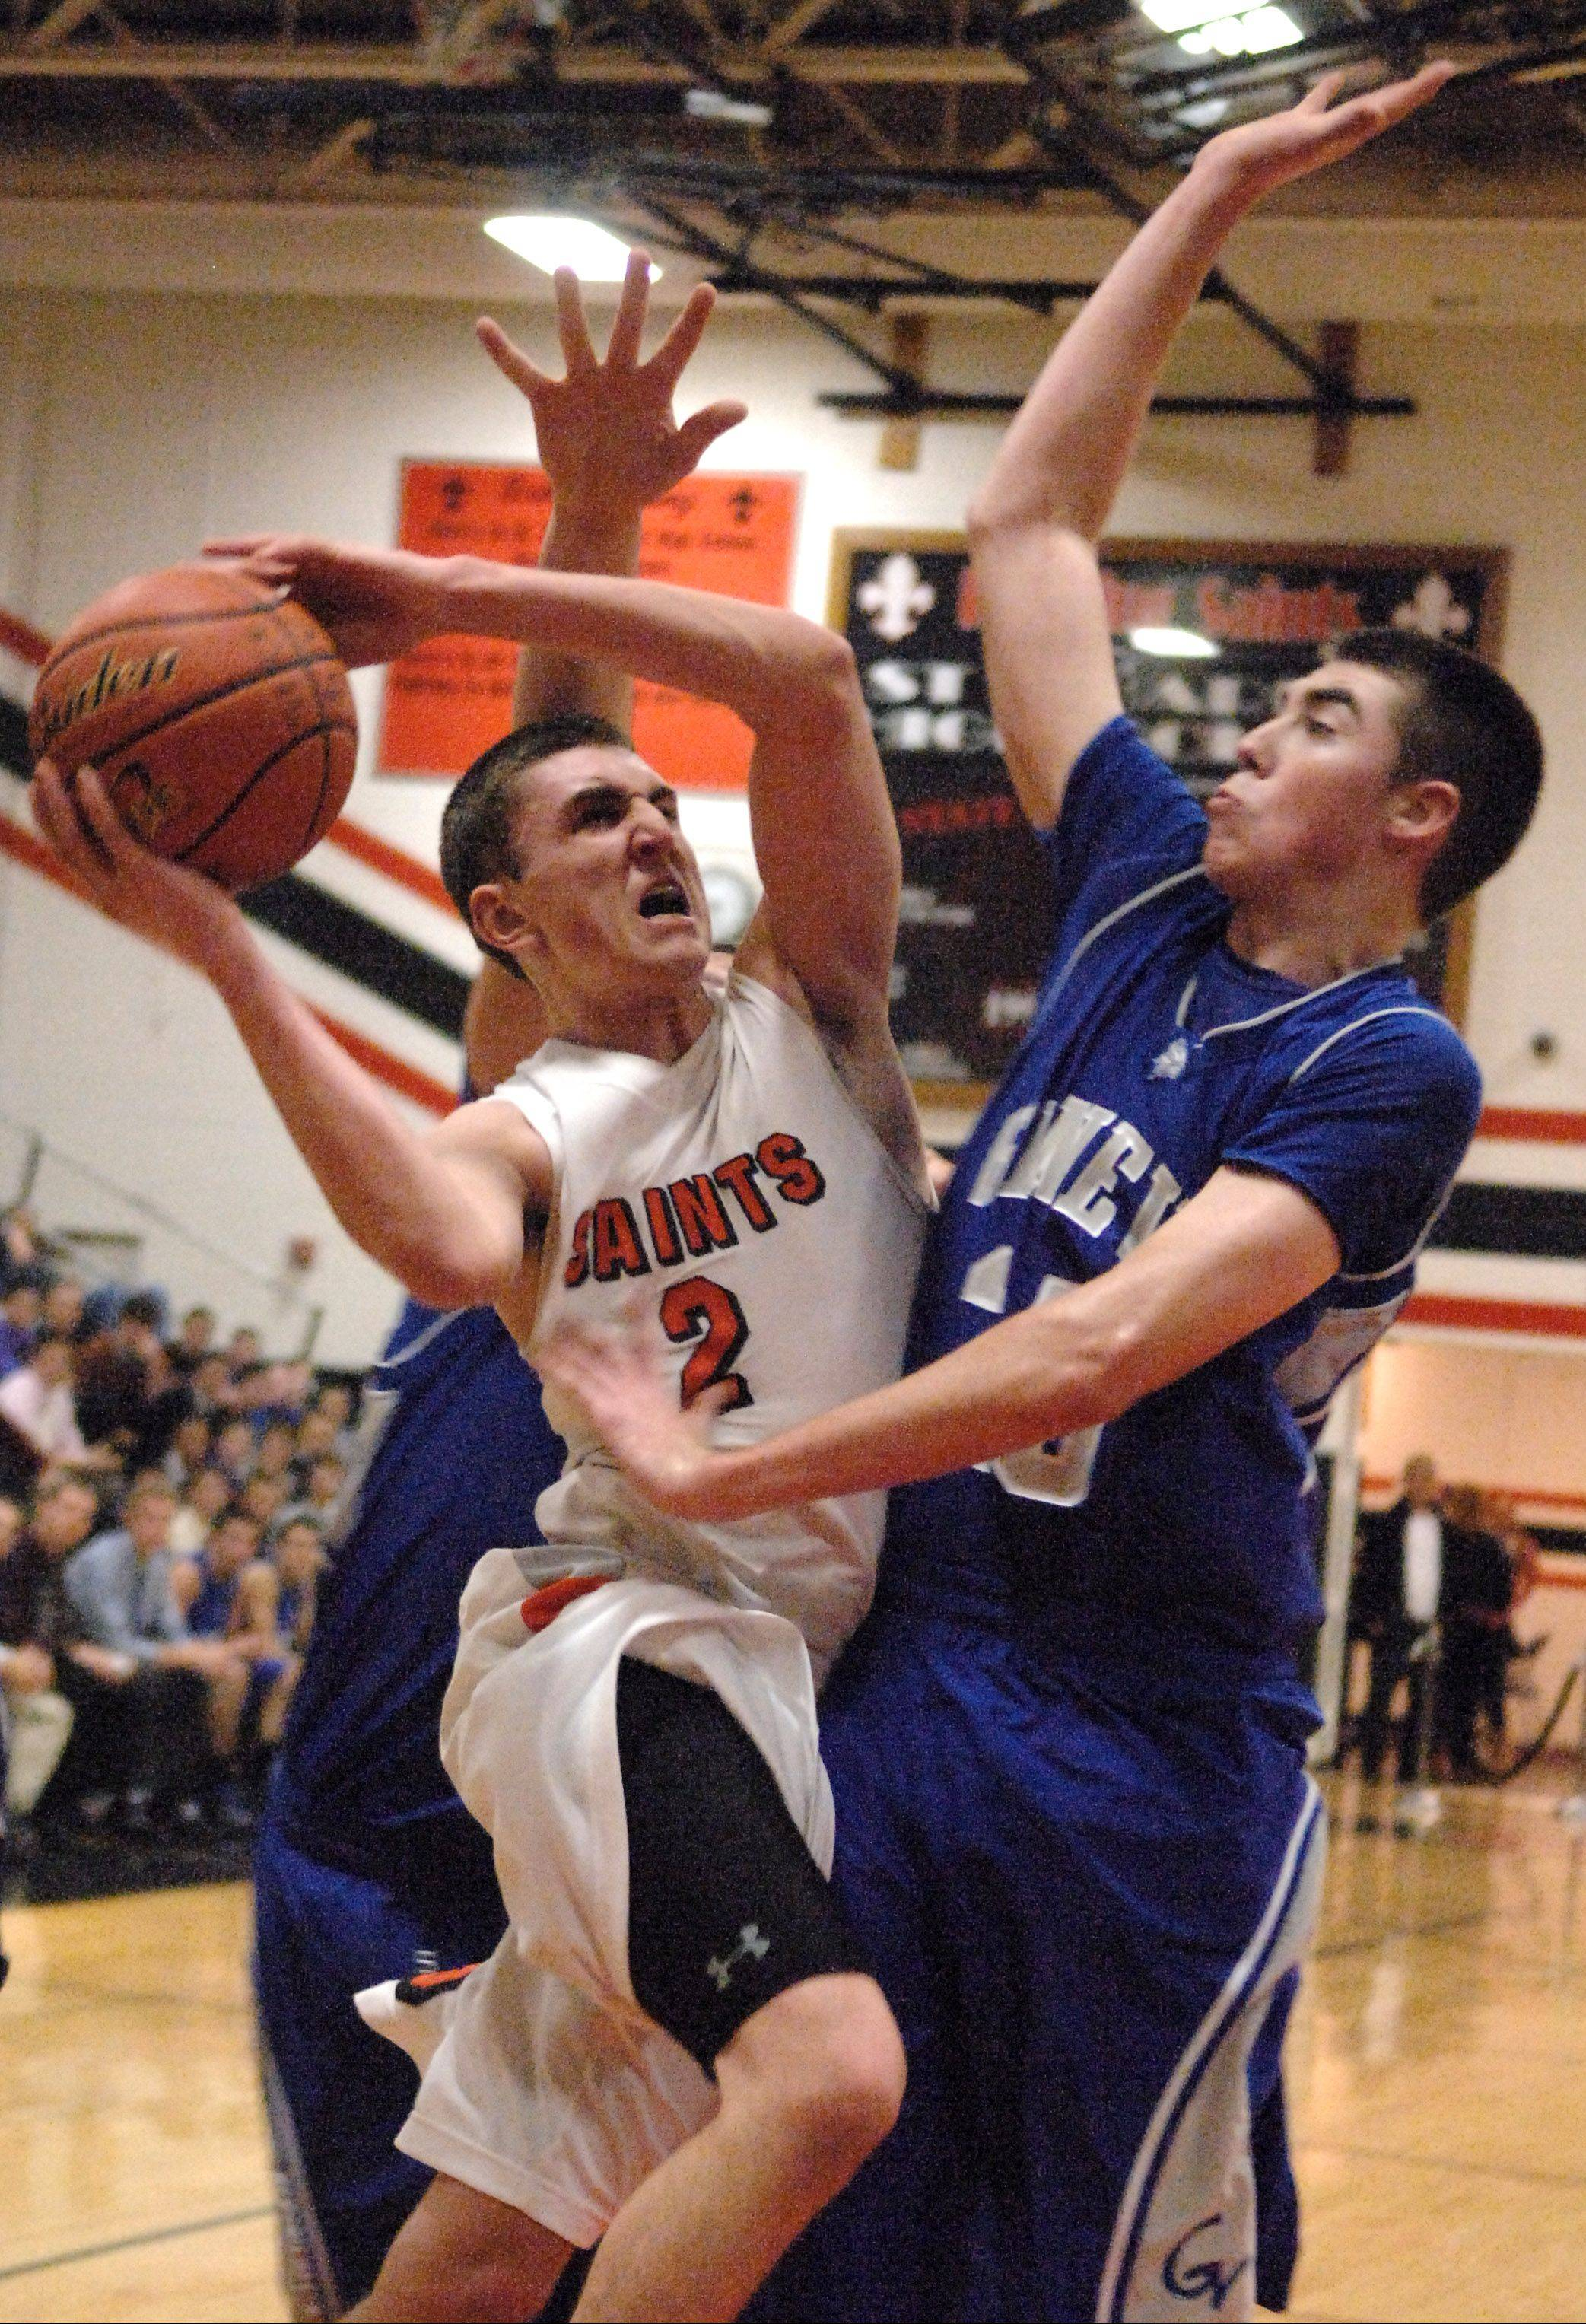 St. Charles East's Dom Adduci drives to the lane and scores despite a Geneva double-team during Friday's game in St. Charles.